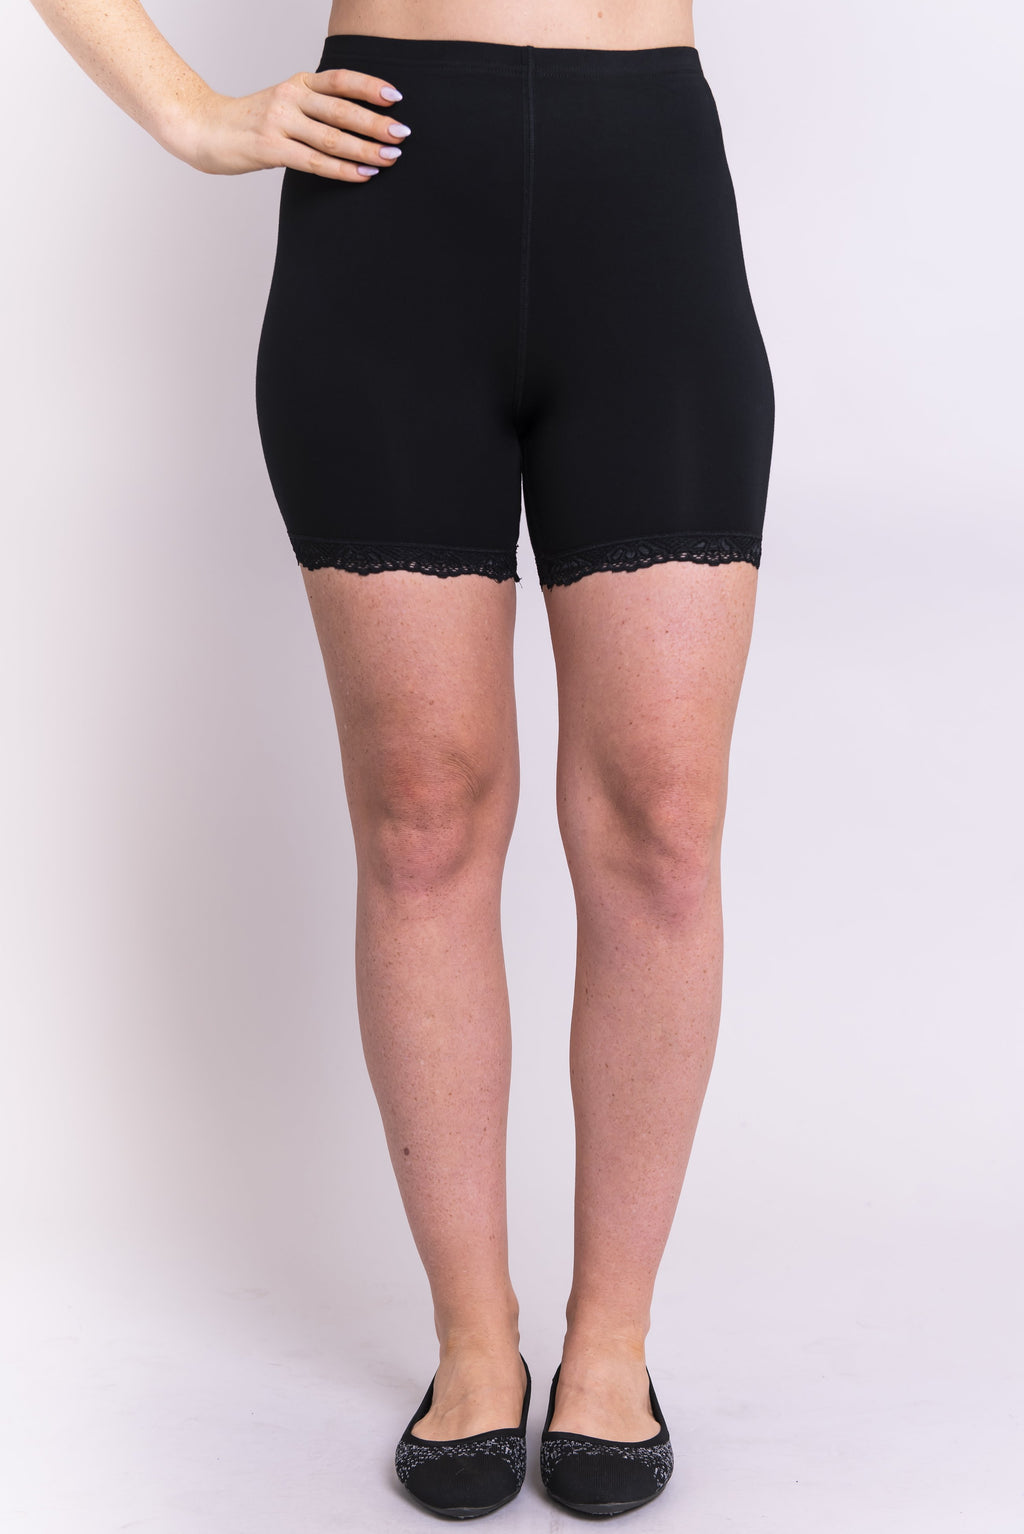 Kitty Undershorts, Black